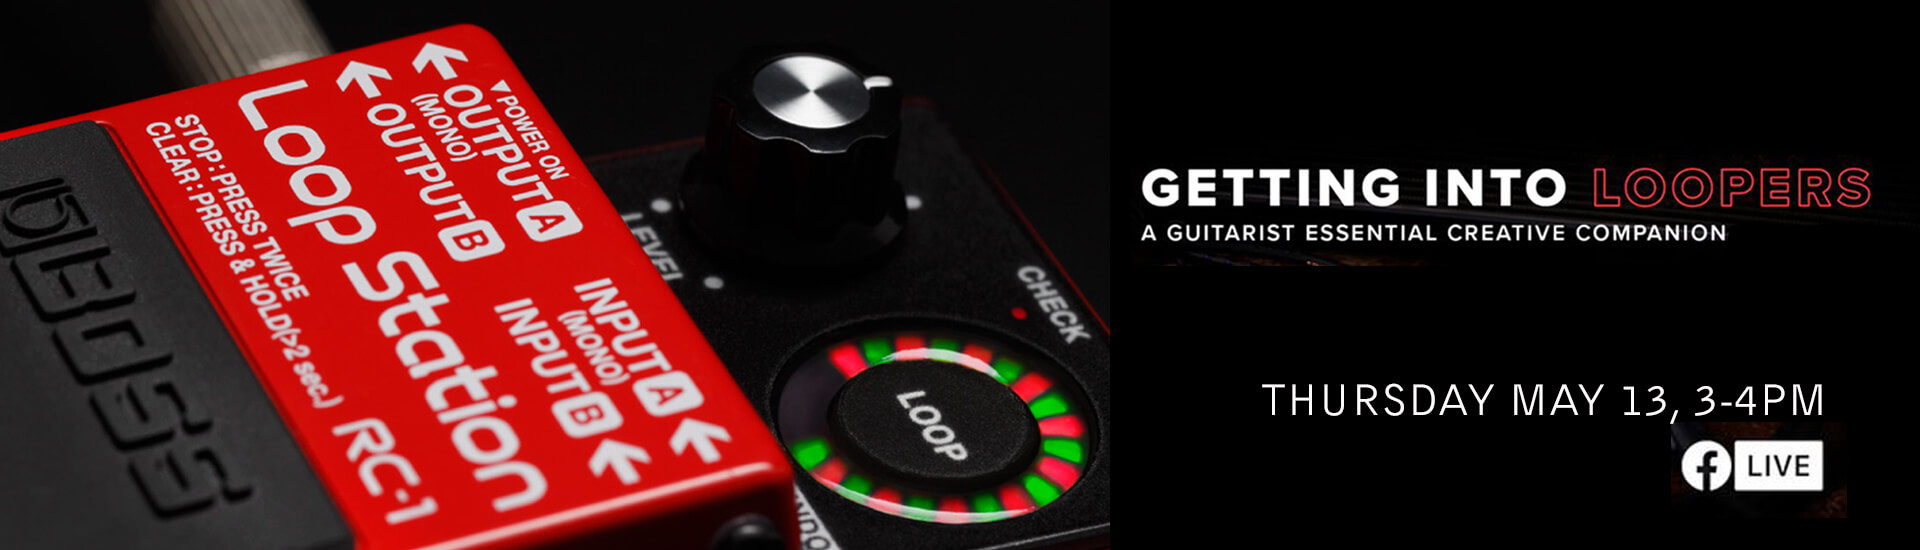 learn about looper pedals for guitars from Boss